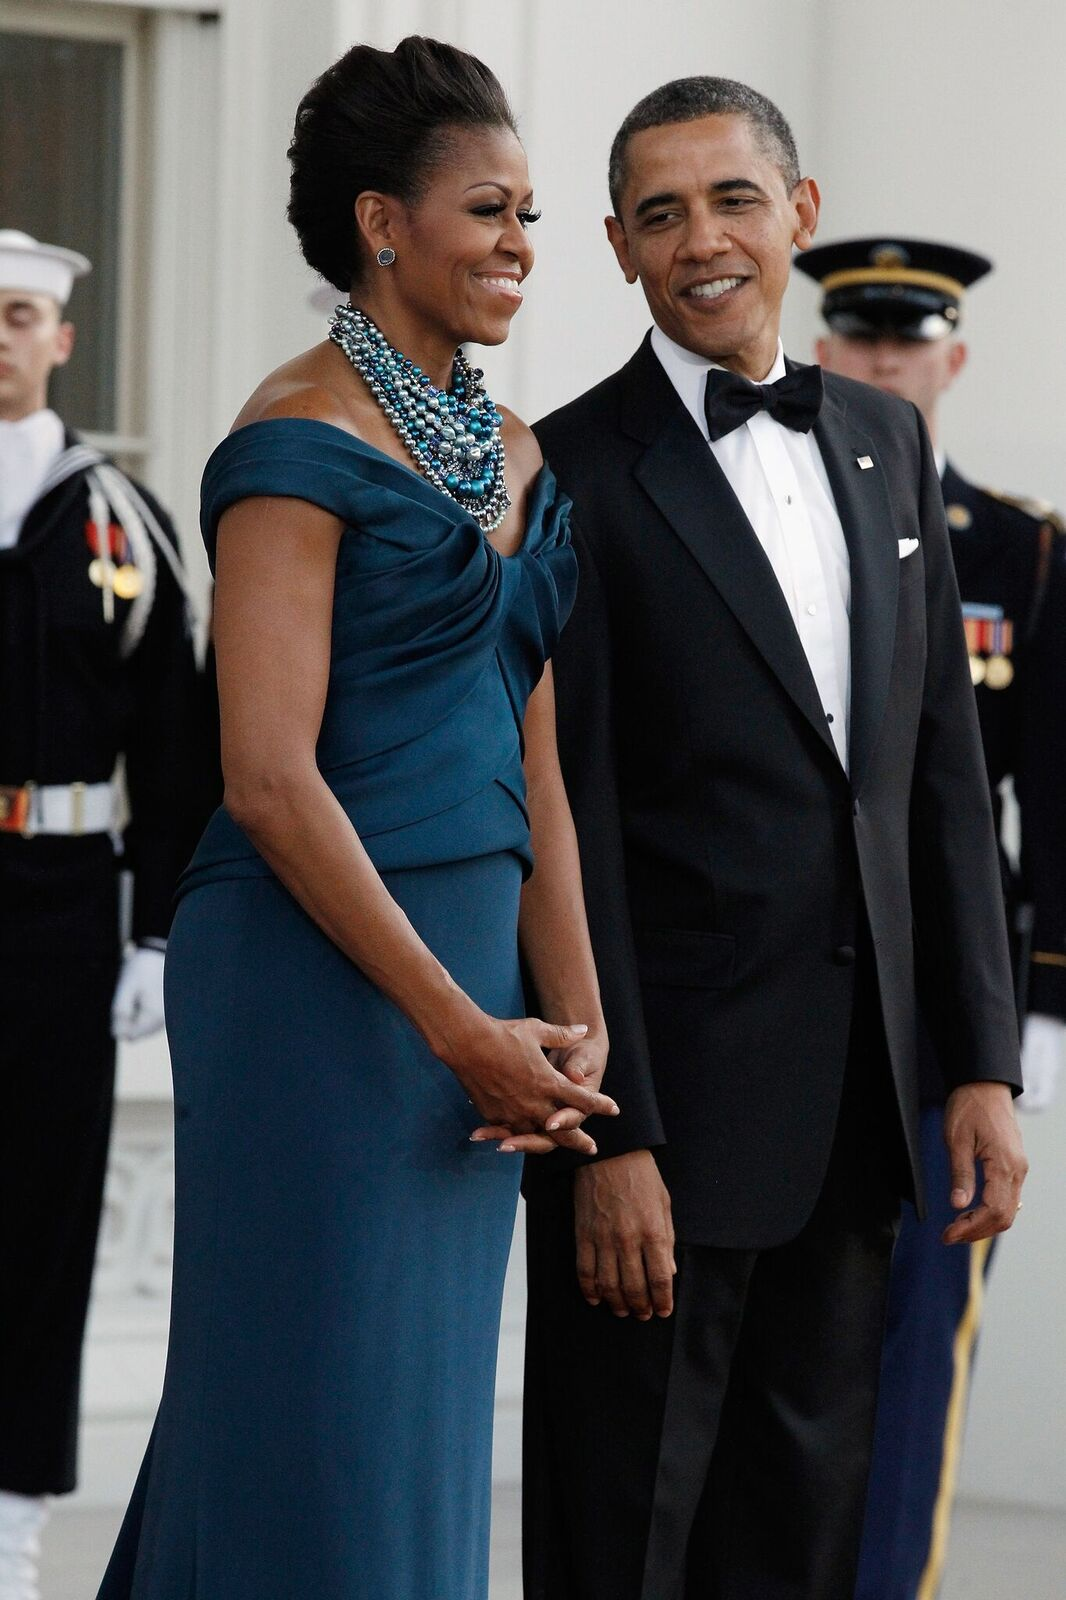 Michelle and Barack Obama await the arrival of British Prime Minister David Cameron and his wife Samantha at the White House on March 14, 2012 | Photo: Getty Images